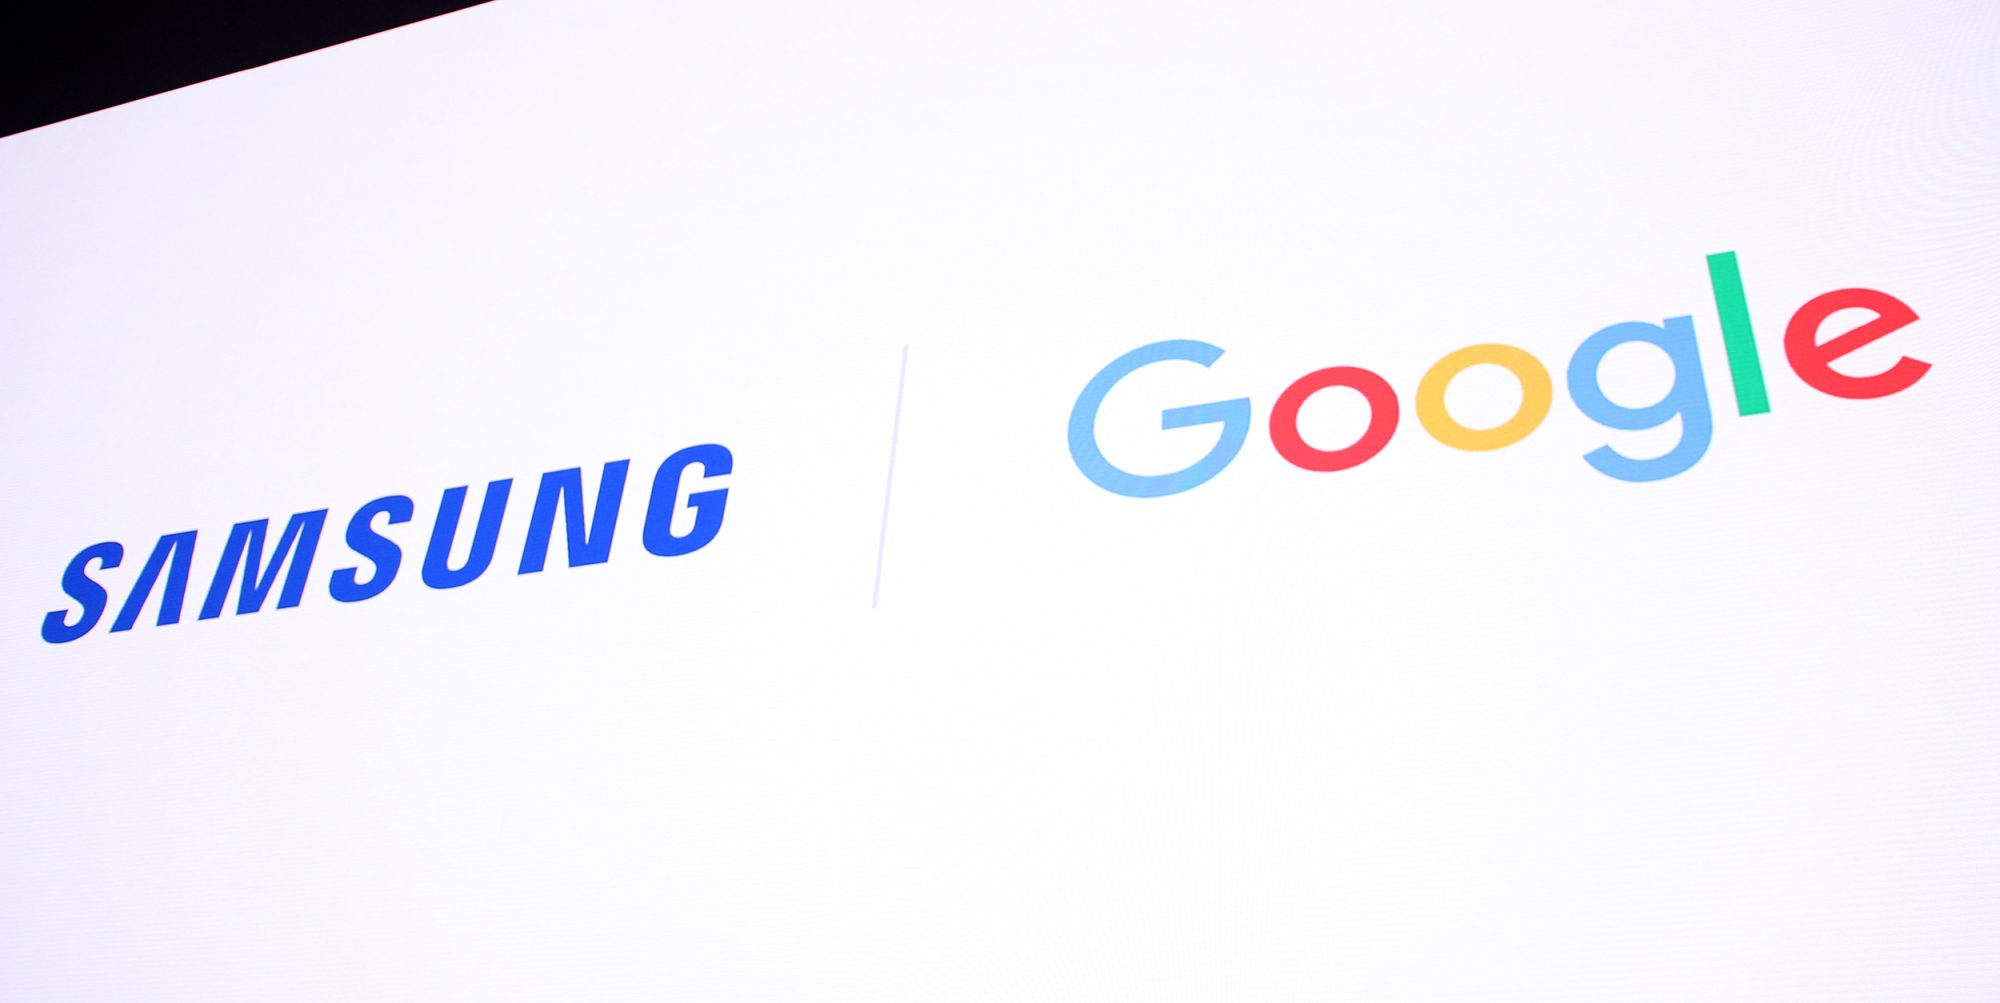 Google is in talks with Samsung to promote its services TechRechard